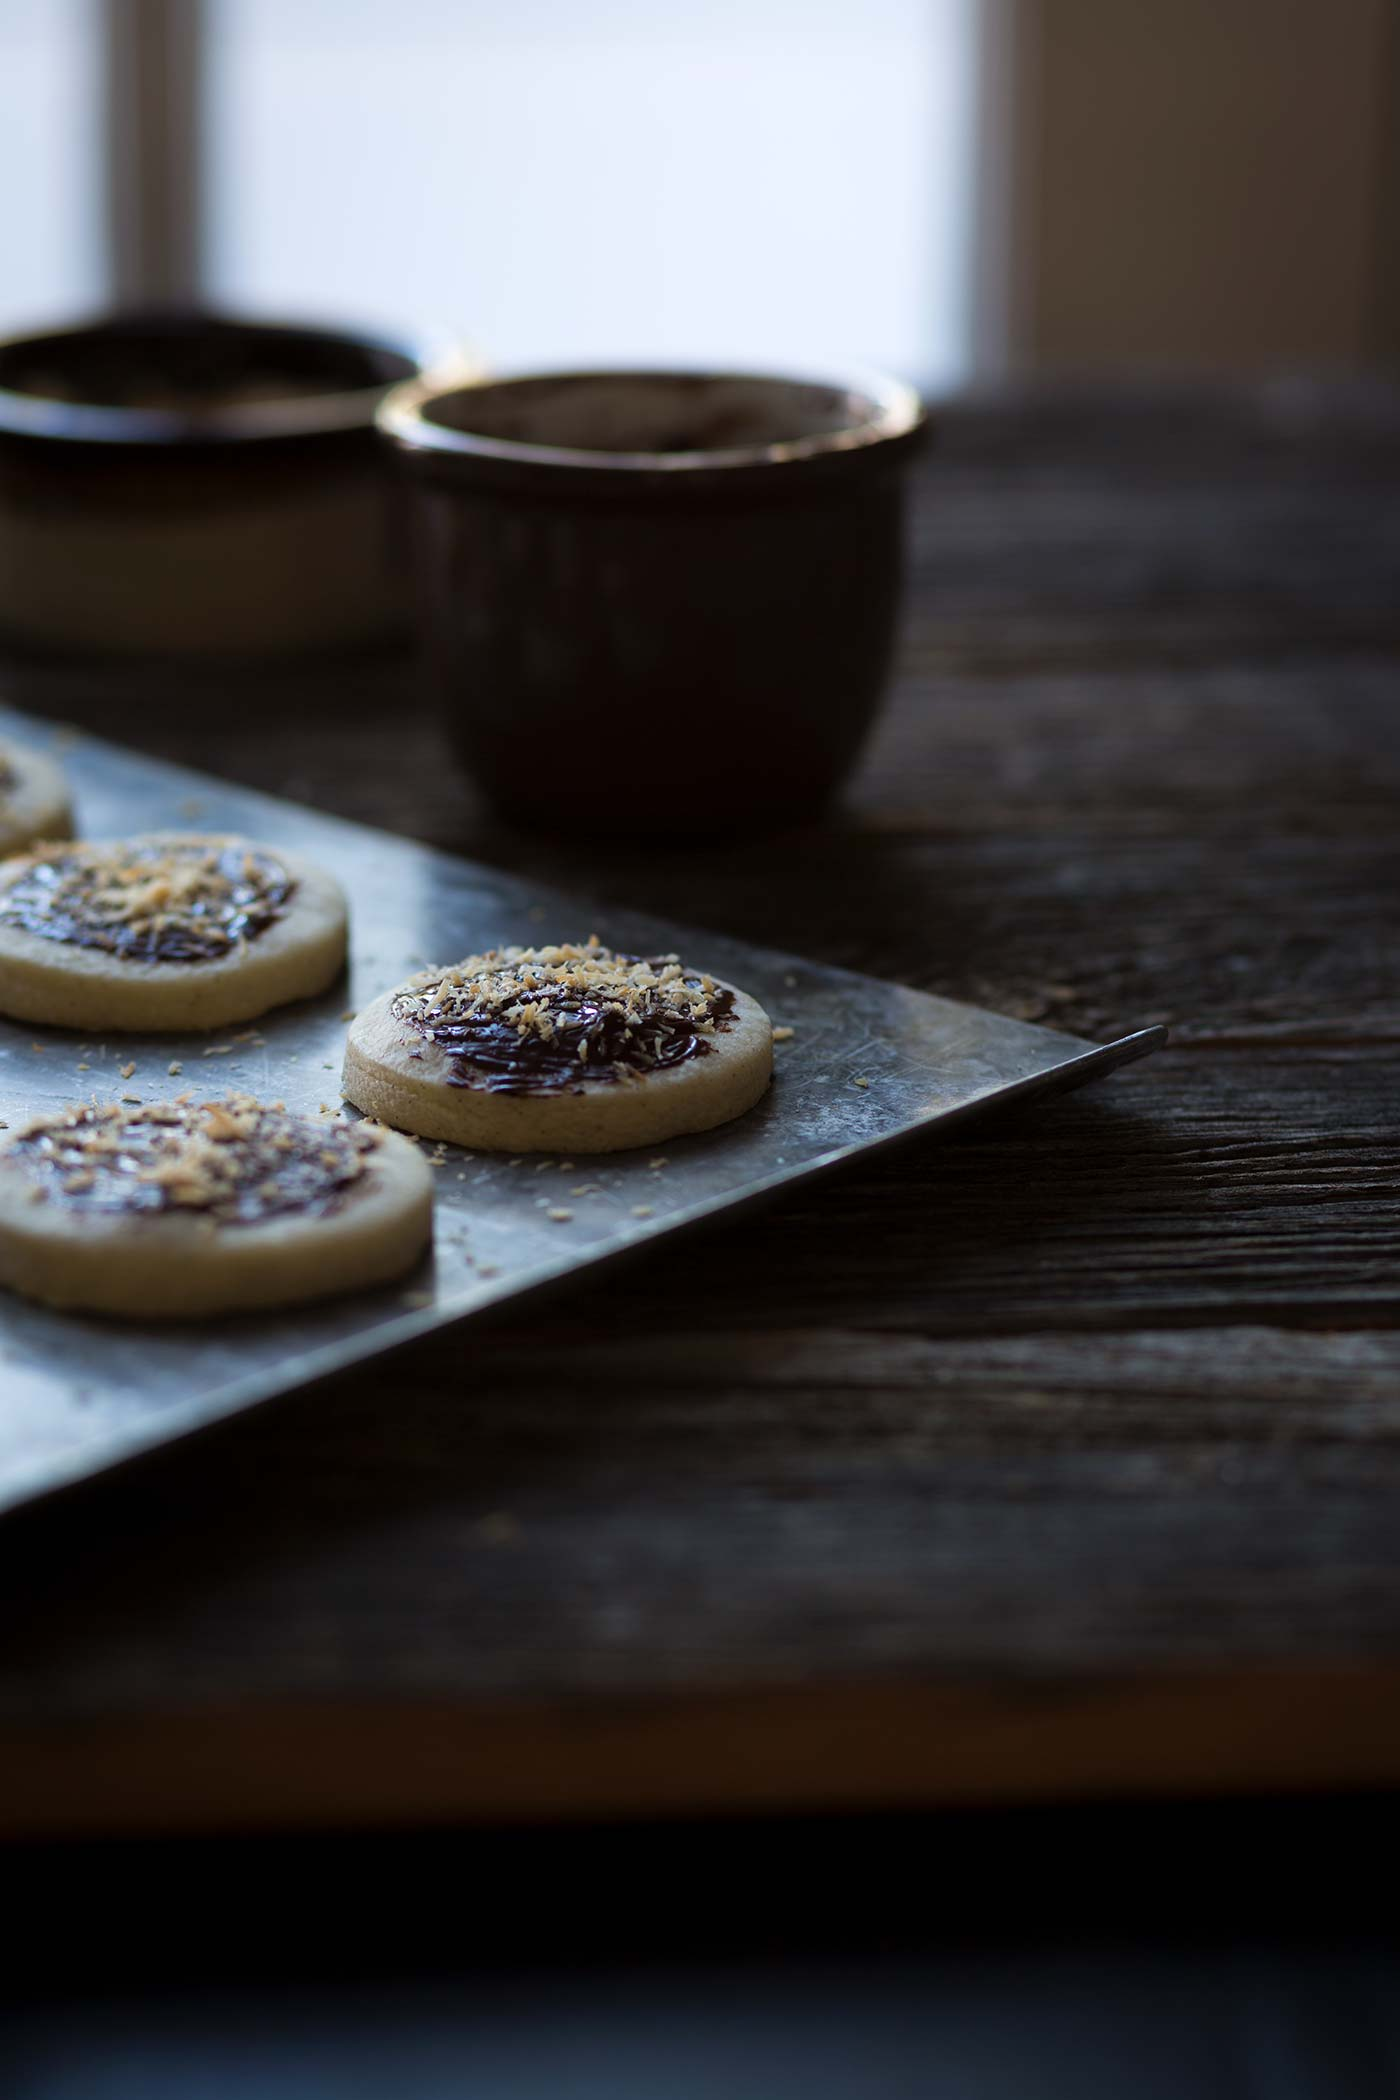 These Cardamom Vanilla Bean Toasted Coconut Cookies are a fragrant mix of flavors and textures. Also included in the post is information about my recent 24 hour digital detox! Get the recipe from Savory Simple.